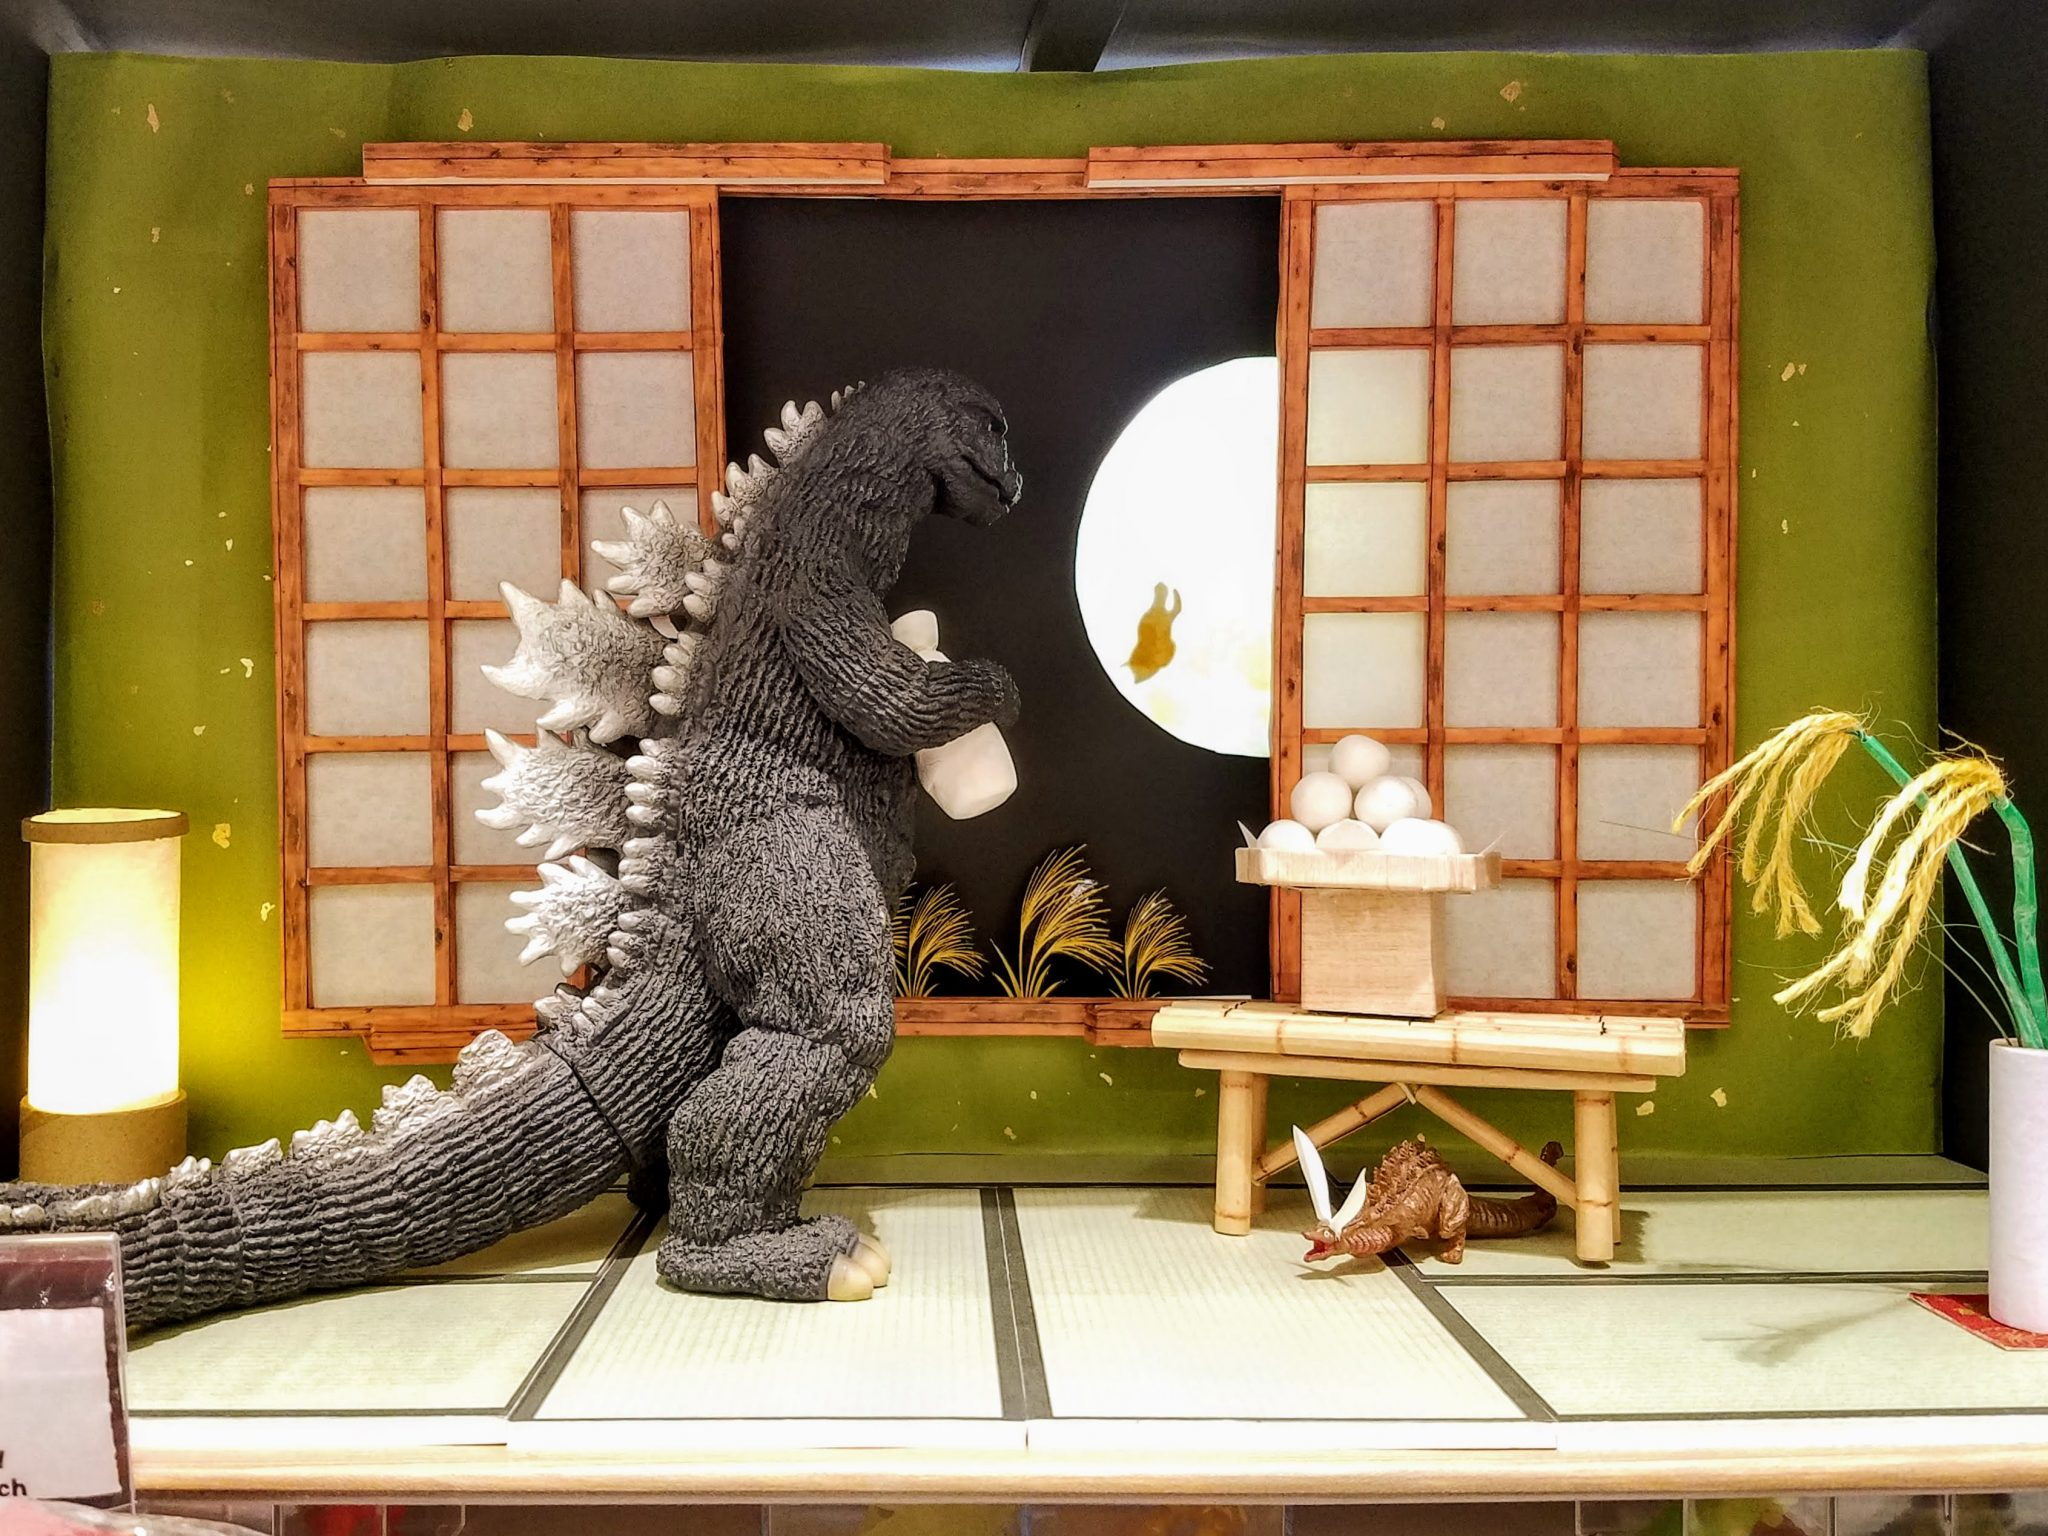 Godzilla enjoying a moon-viewing (tsukimi) party at the Godzilla Store in Tokyo